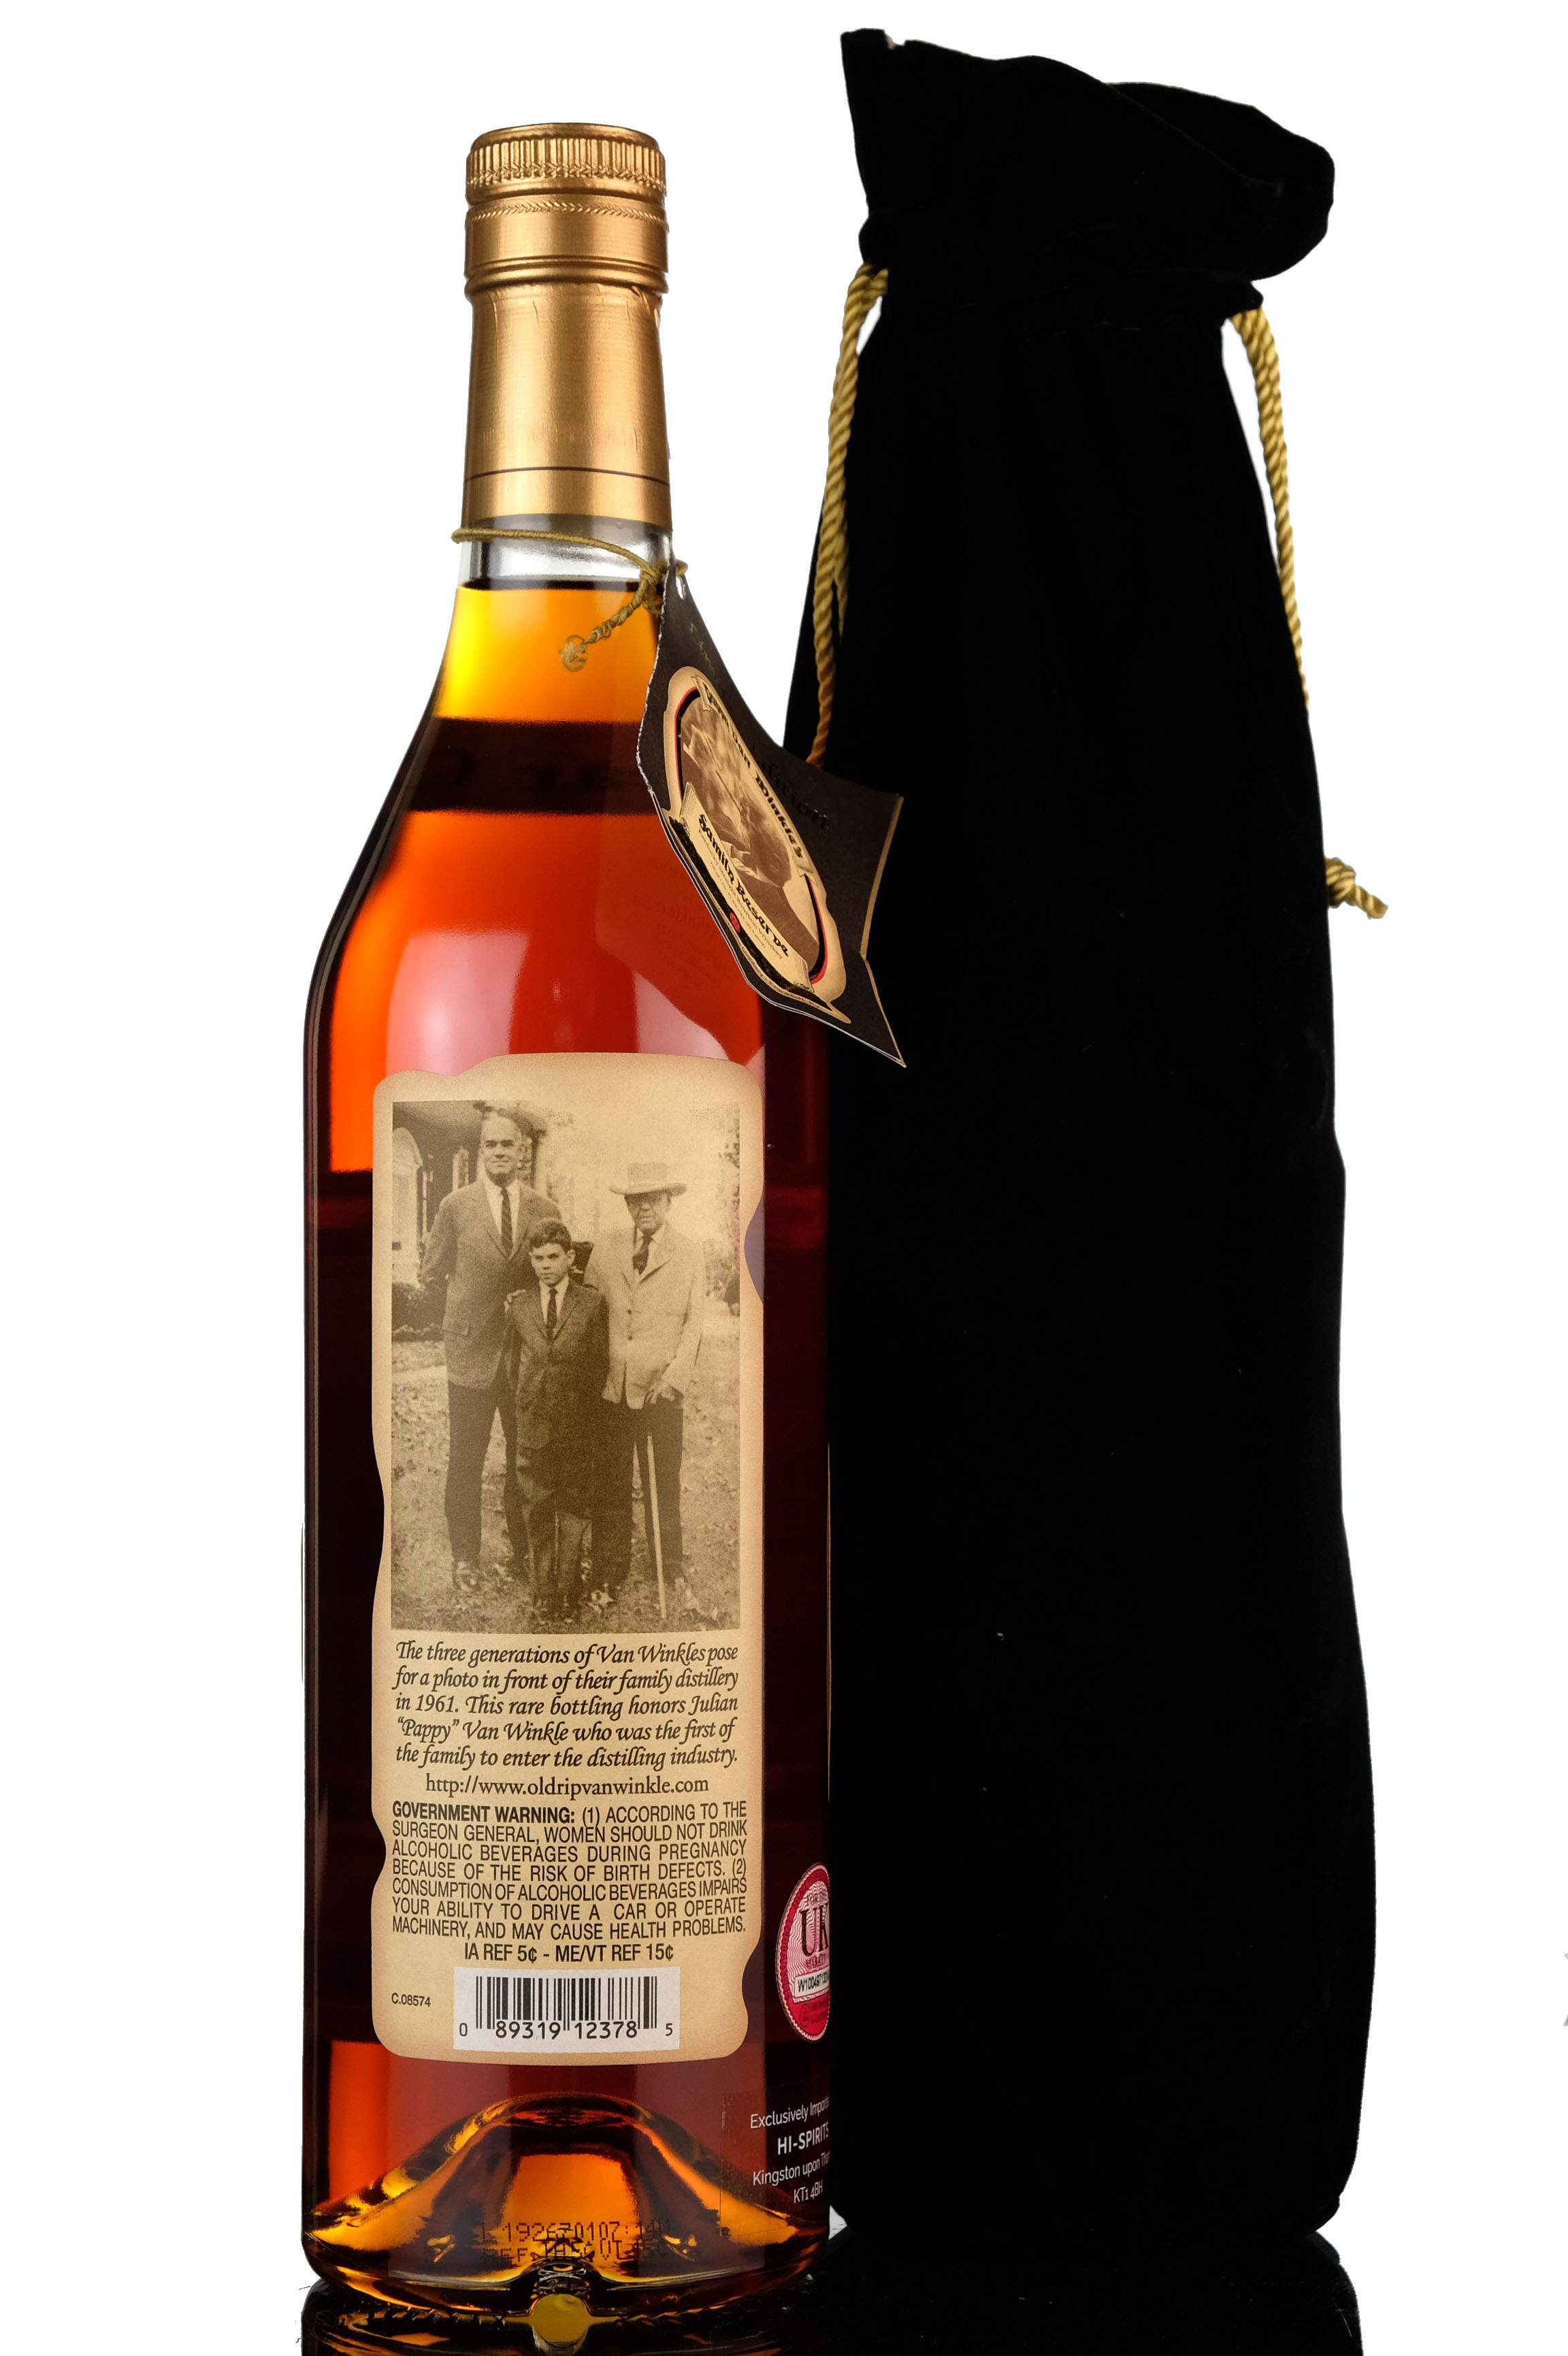 pappy van winkles family reserve - 23 year old - kentucky straight bourbon whiskey